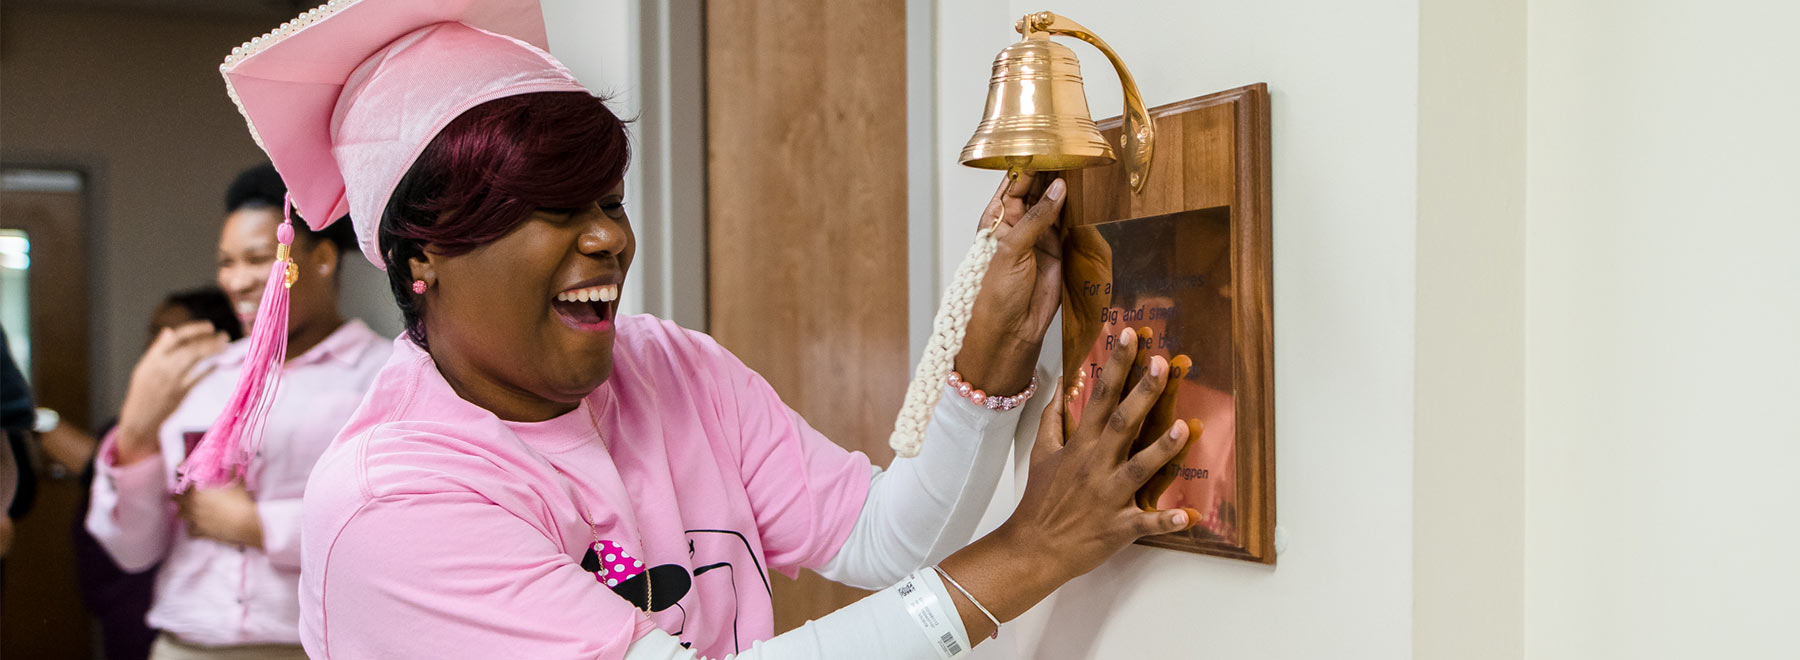 Female patient rings bell signifying her last treatment